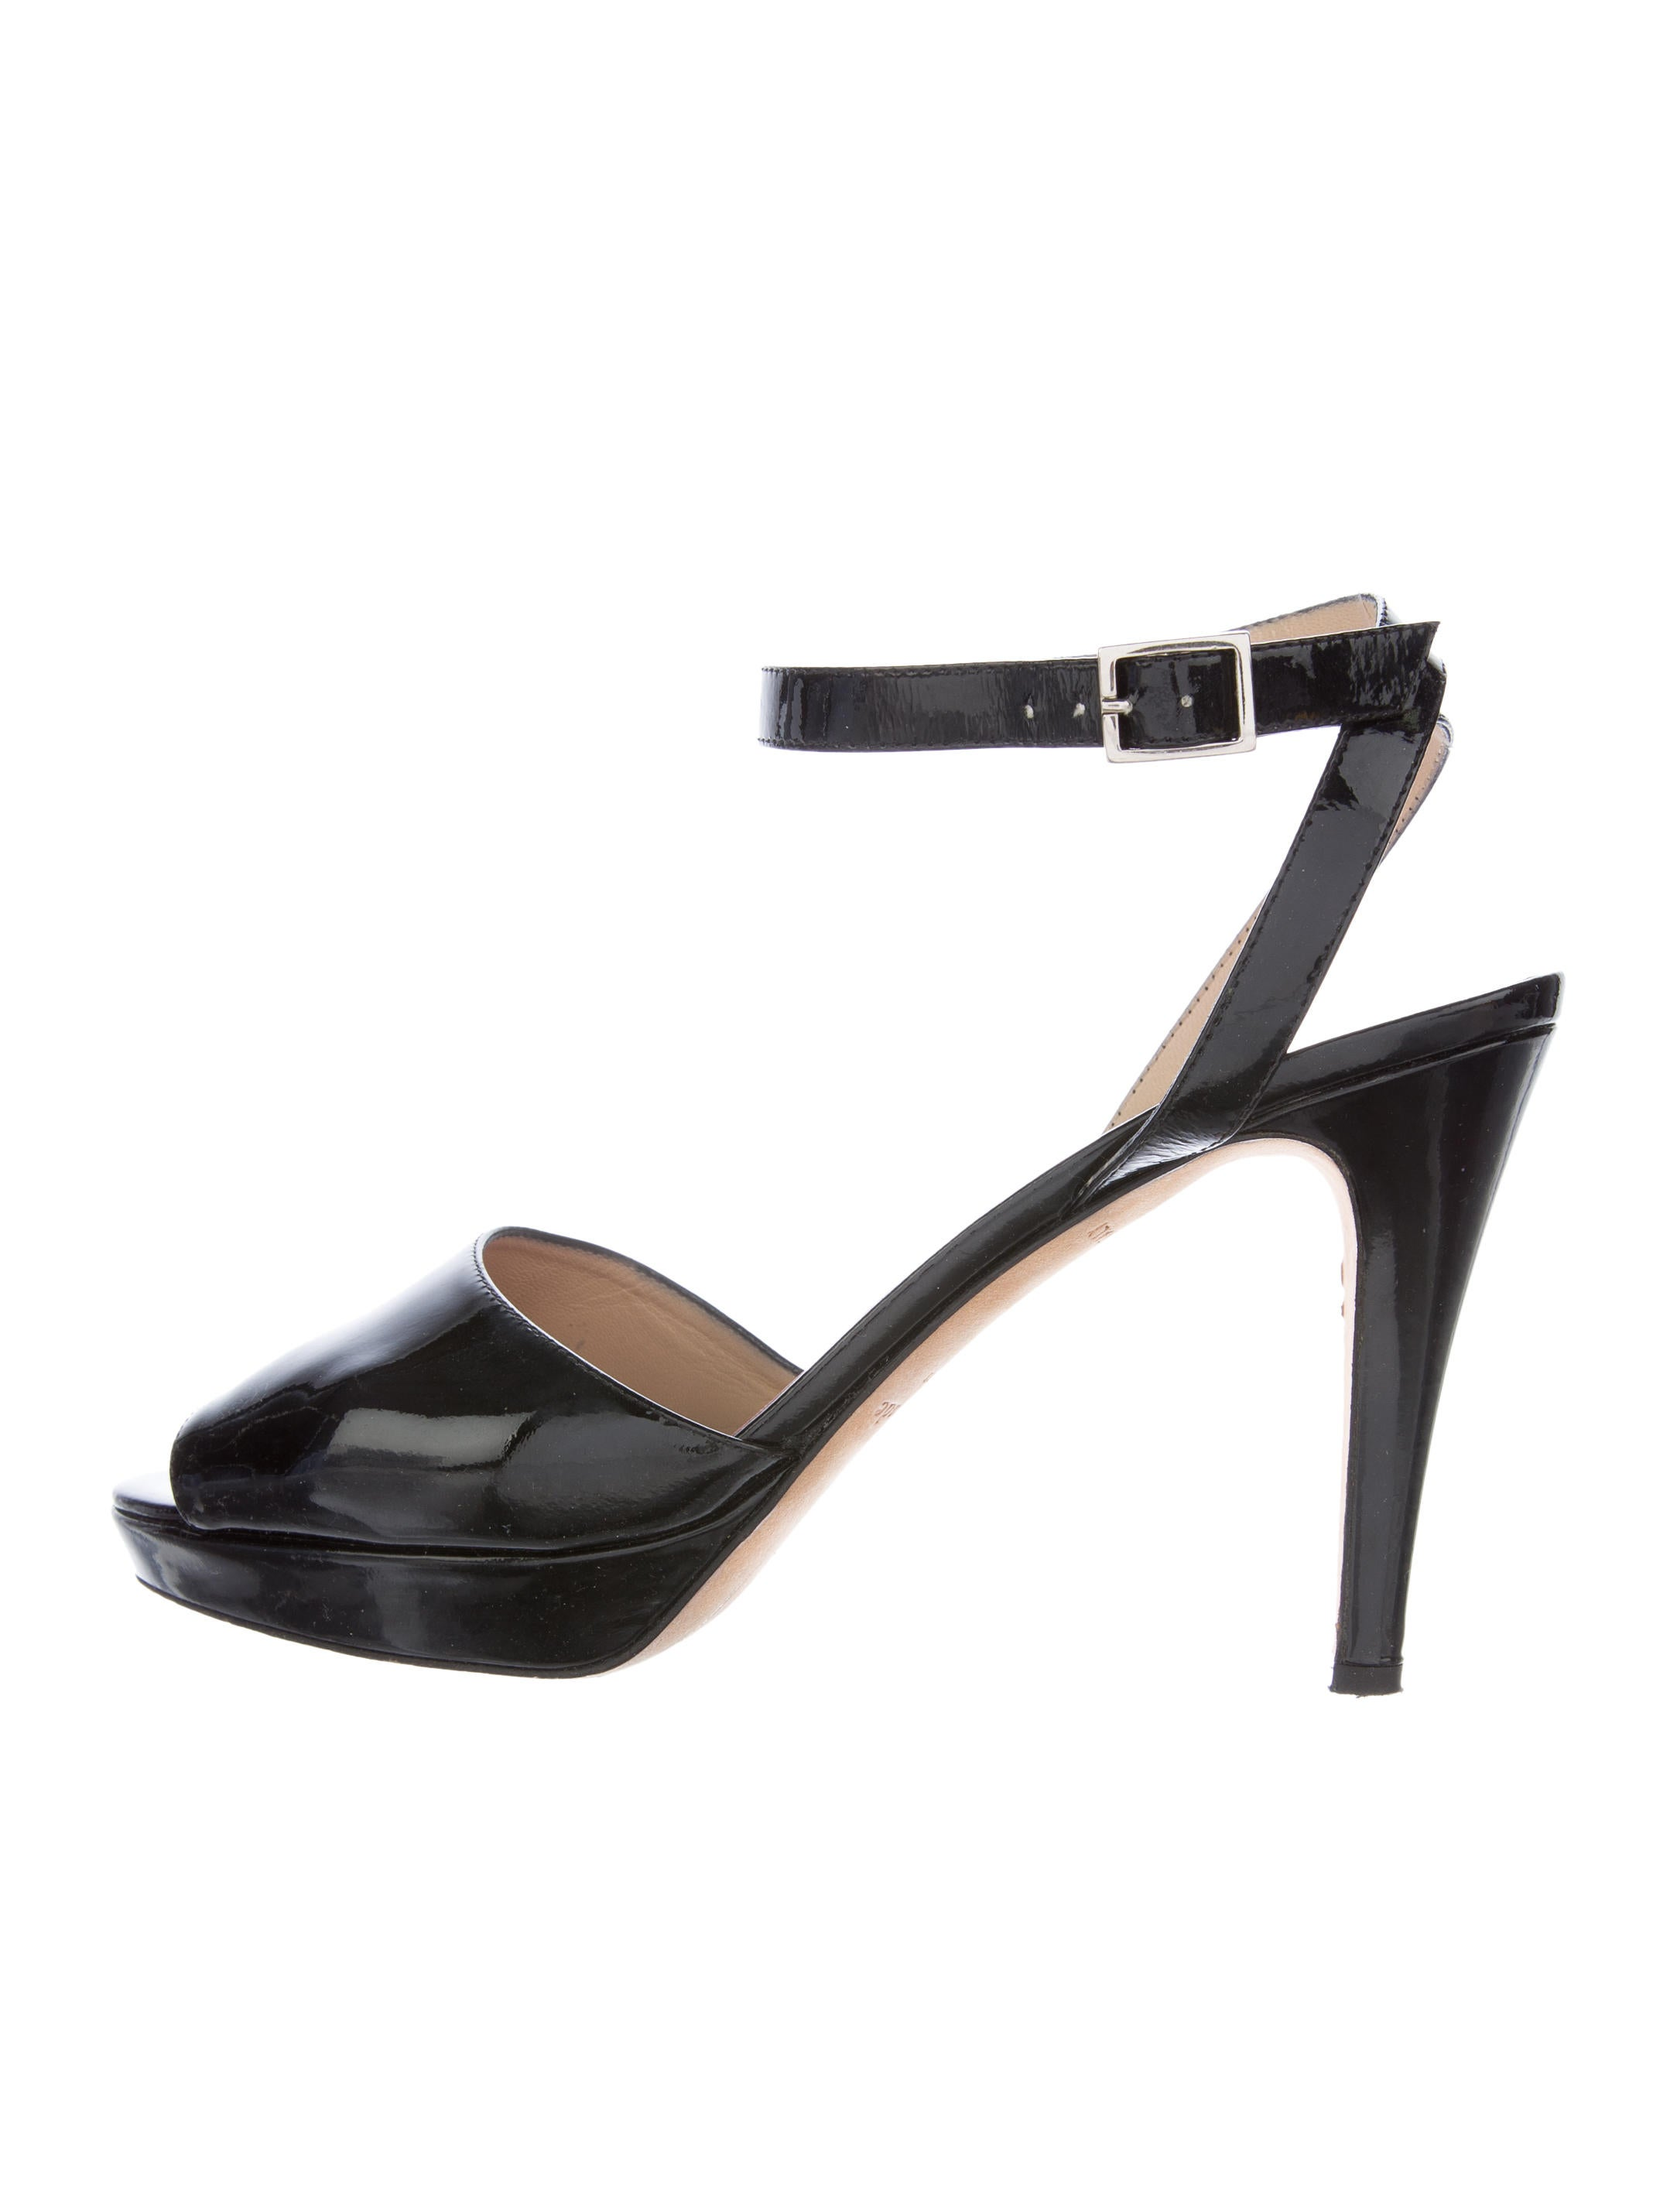 kate spade new york patent leather ankle sandals